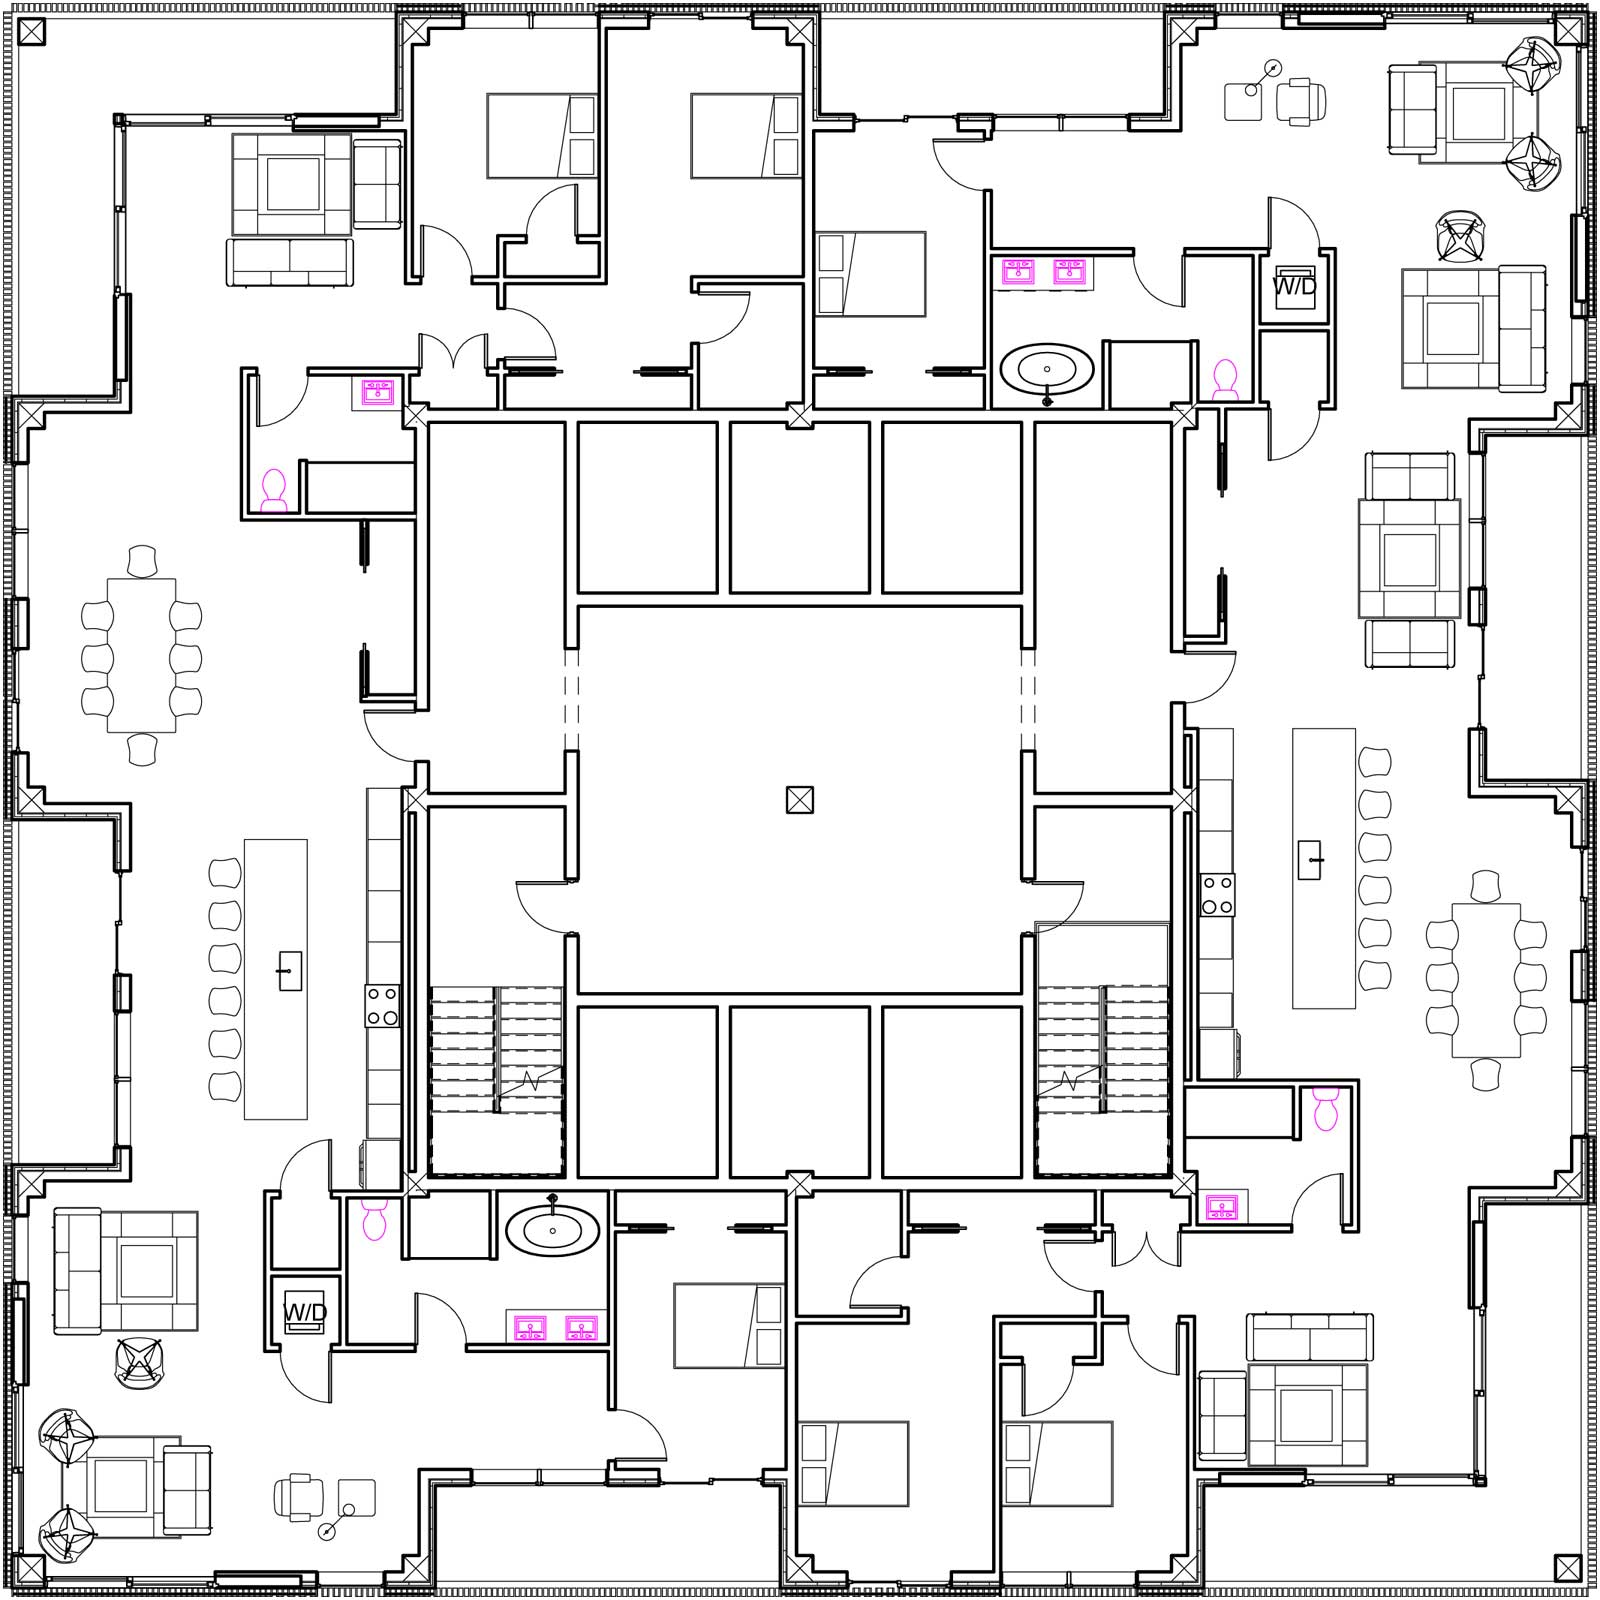 NYC-Timber-Residential-Skyscraper-3-Bedroom-Unit-Floor-Plan-Type-A.jpg